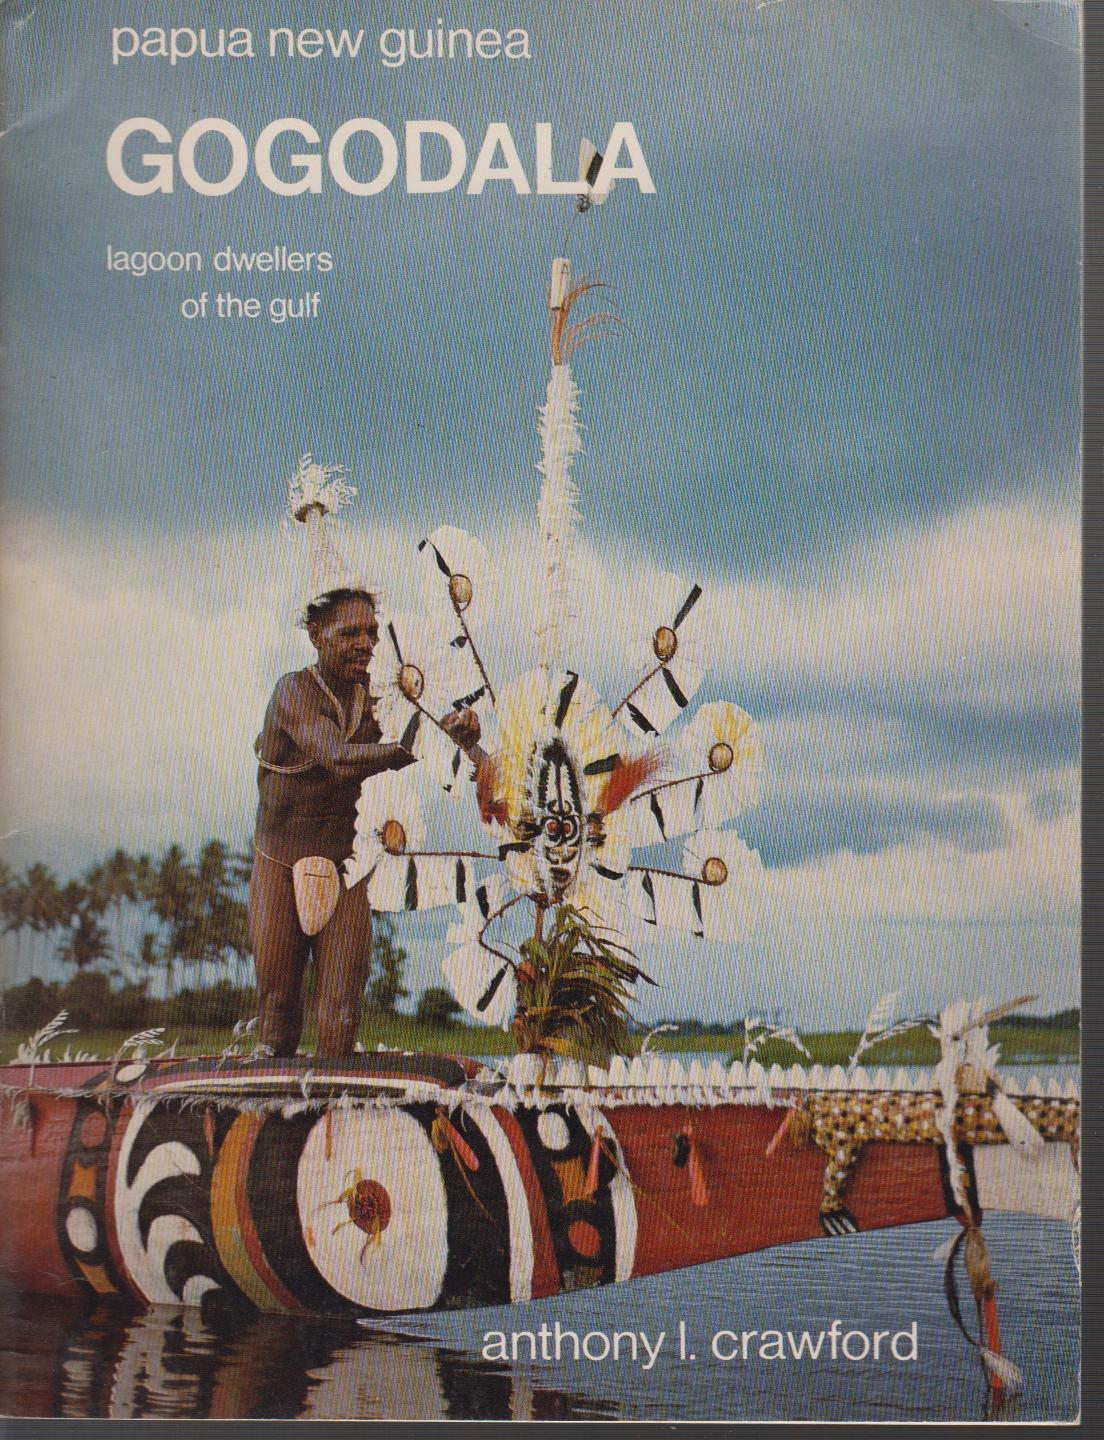 Papua new guinea - Gogodala - lagoon dwellers of the gulf